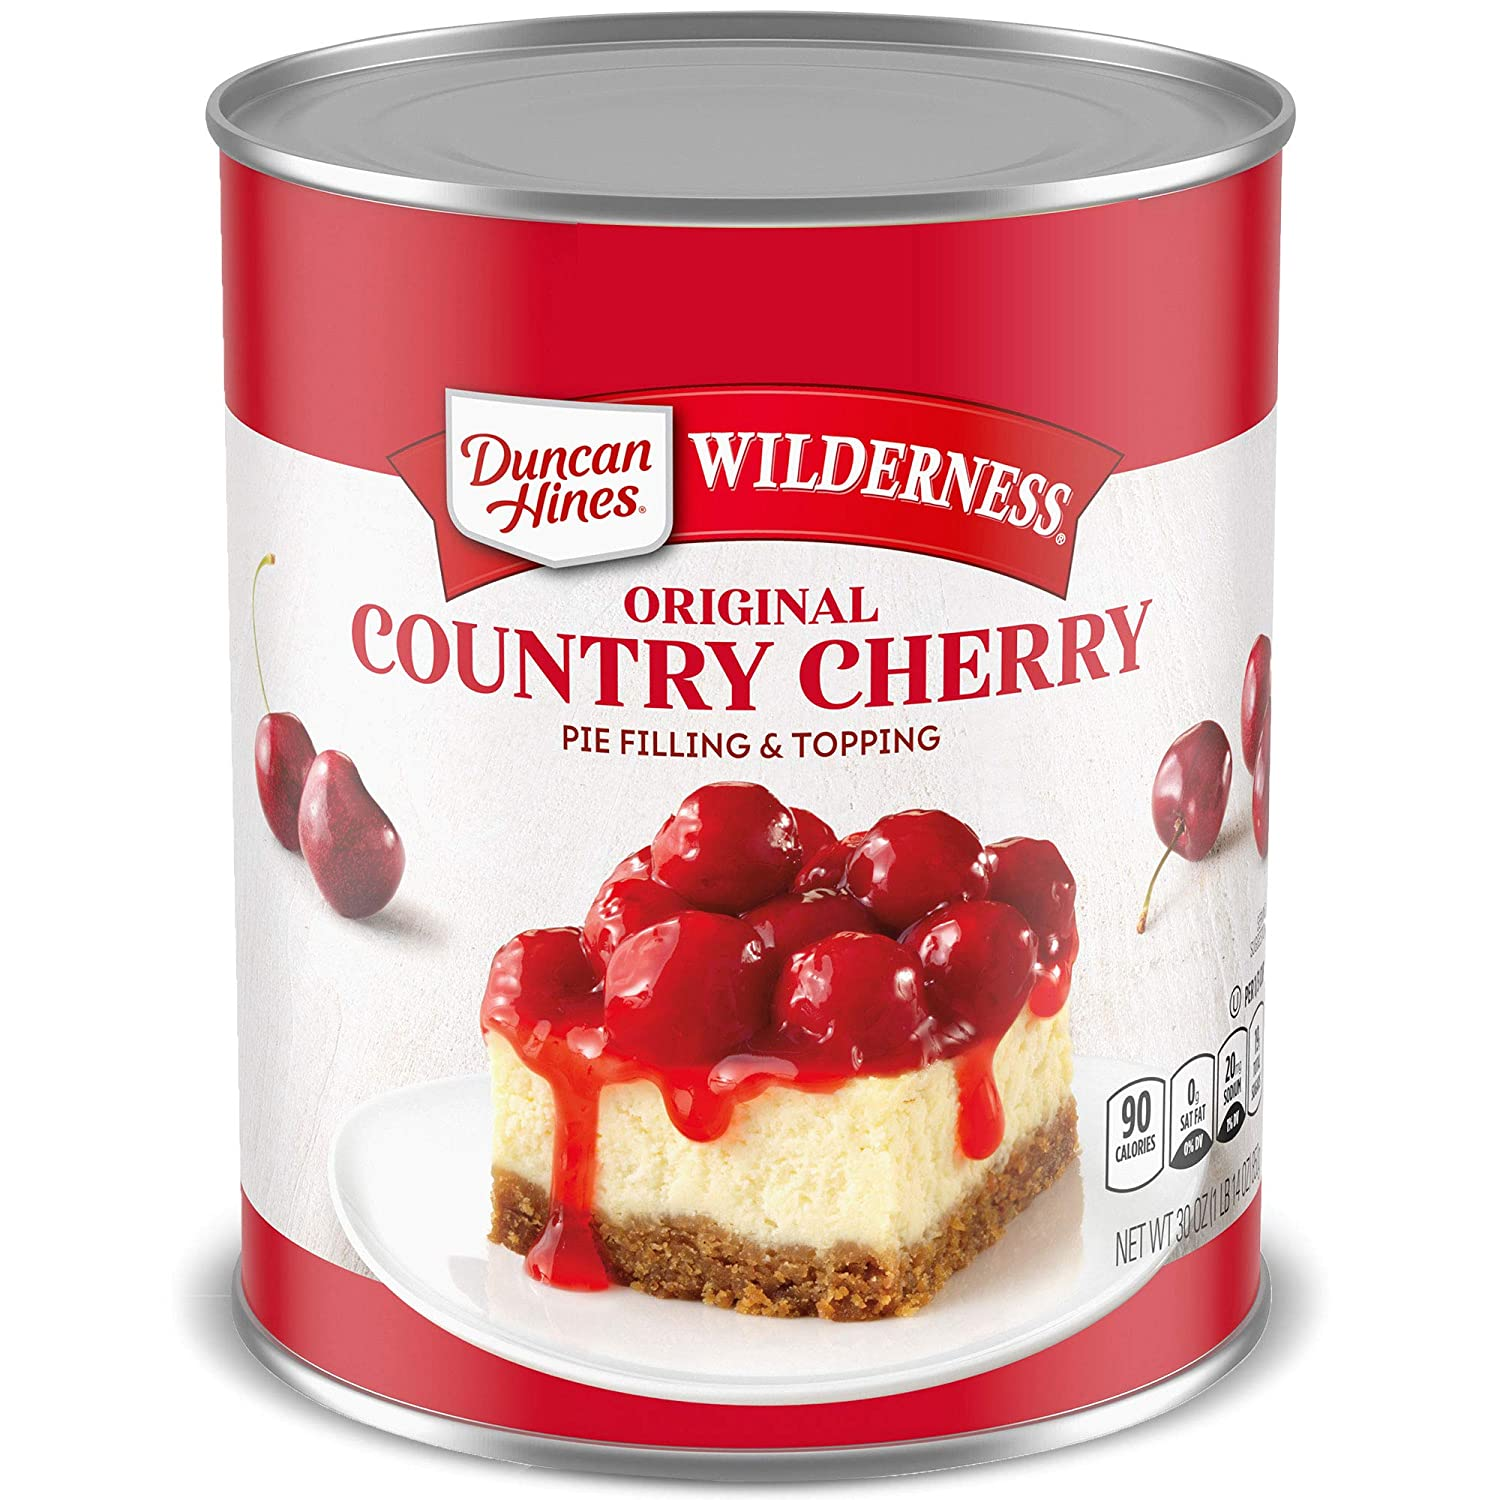 Duncan Arlington Mall Hines Wilderness Original All stores are sold Country Cherry and Pie Filling